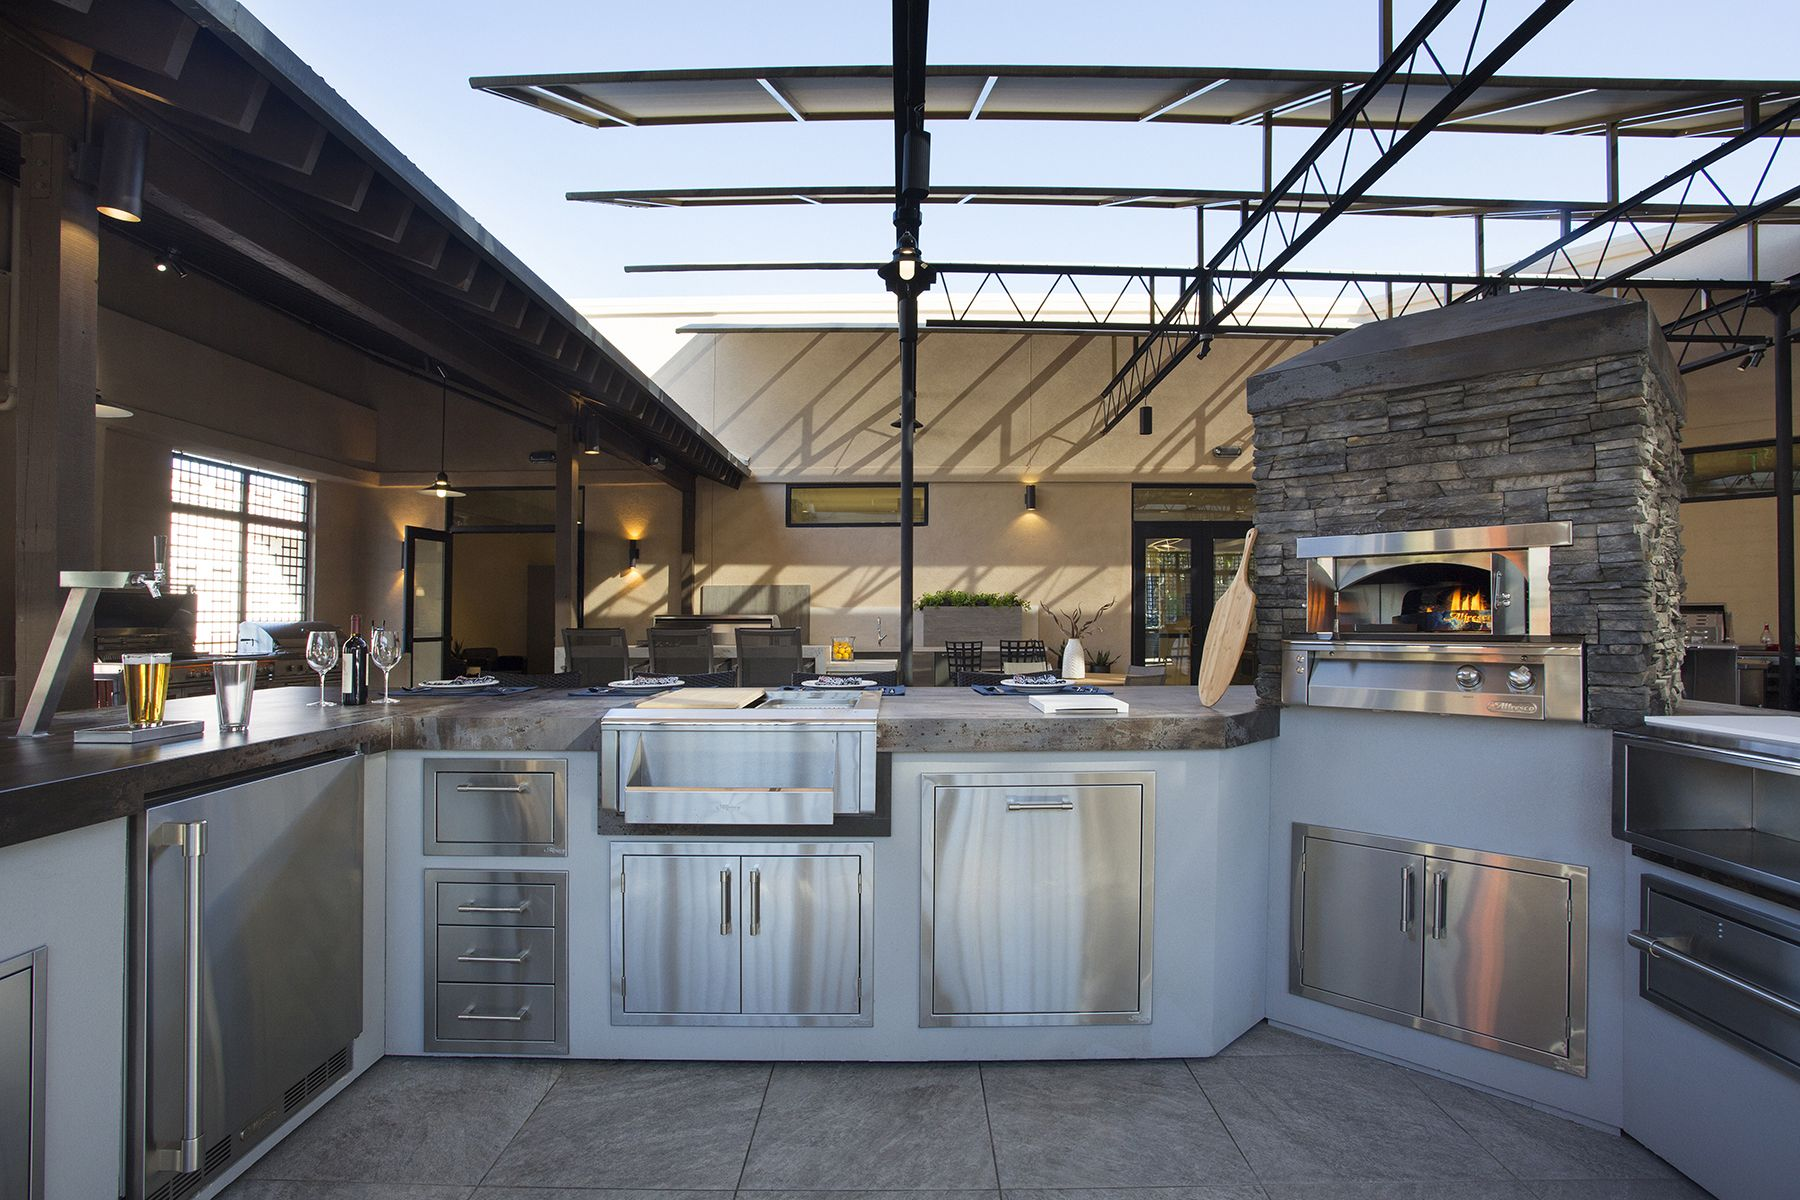 Alfresco Outdoor Kitchen With Alxe Grill Accessories And Pizza Oven Plus Outdoor Kitchen Outdoor Kitchen Bars Alfresco